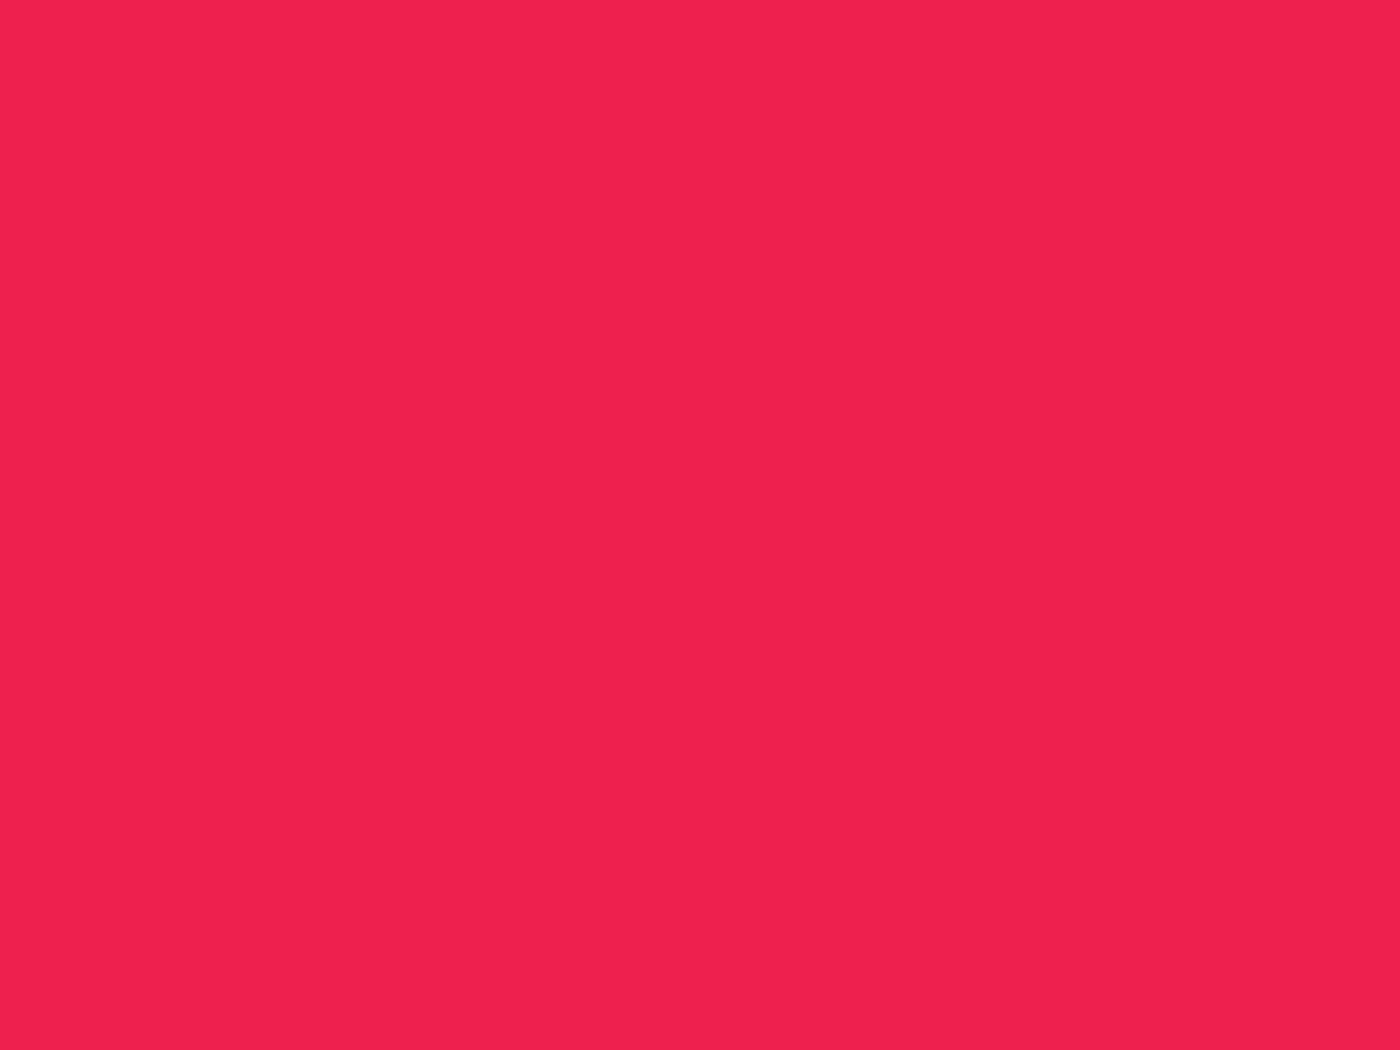 1400x1050 Red Crayola Solid Color Background